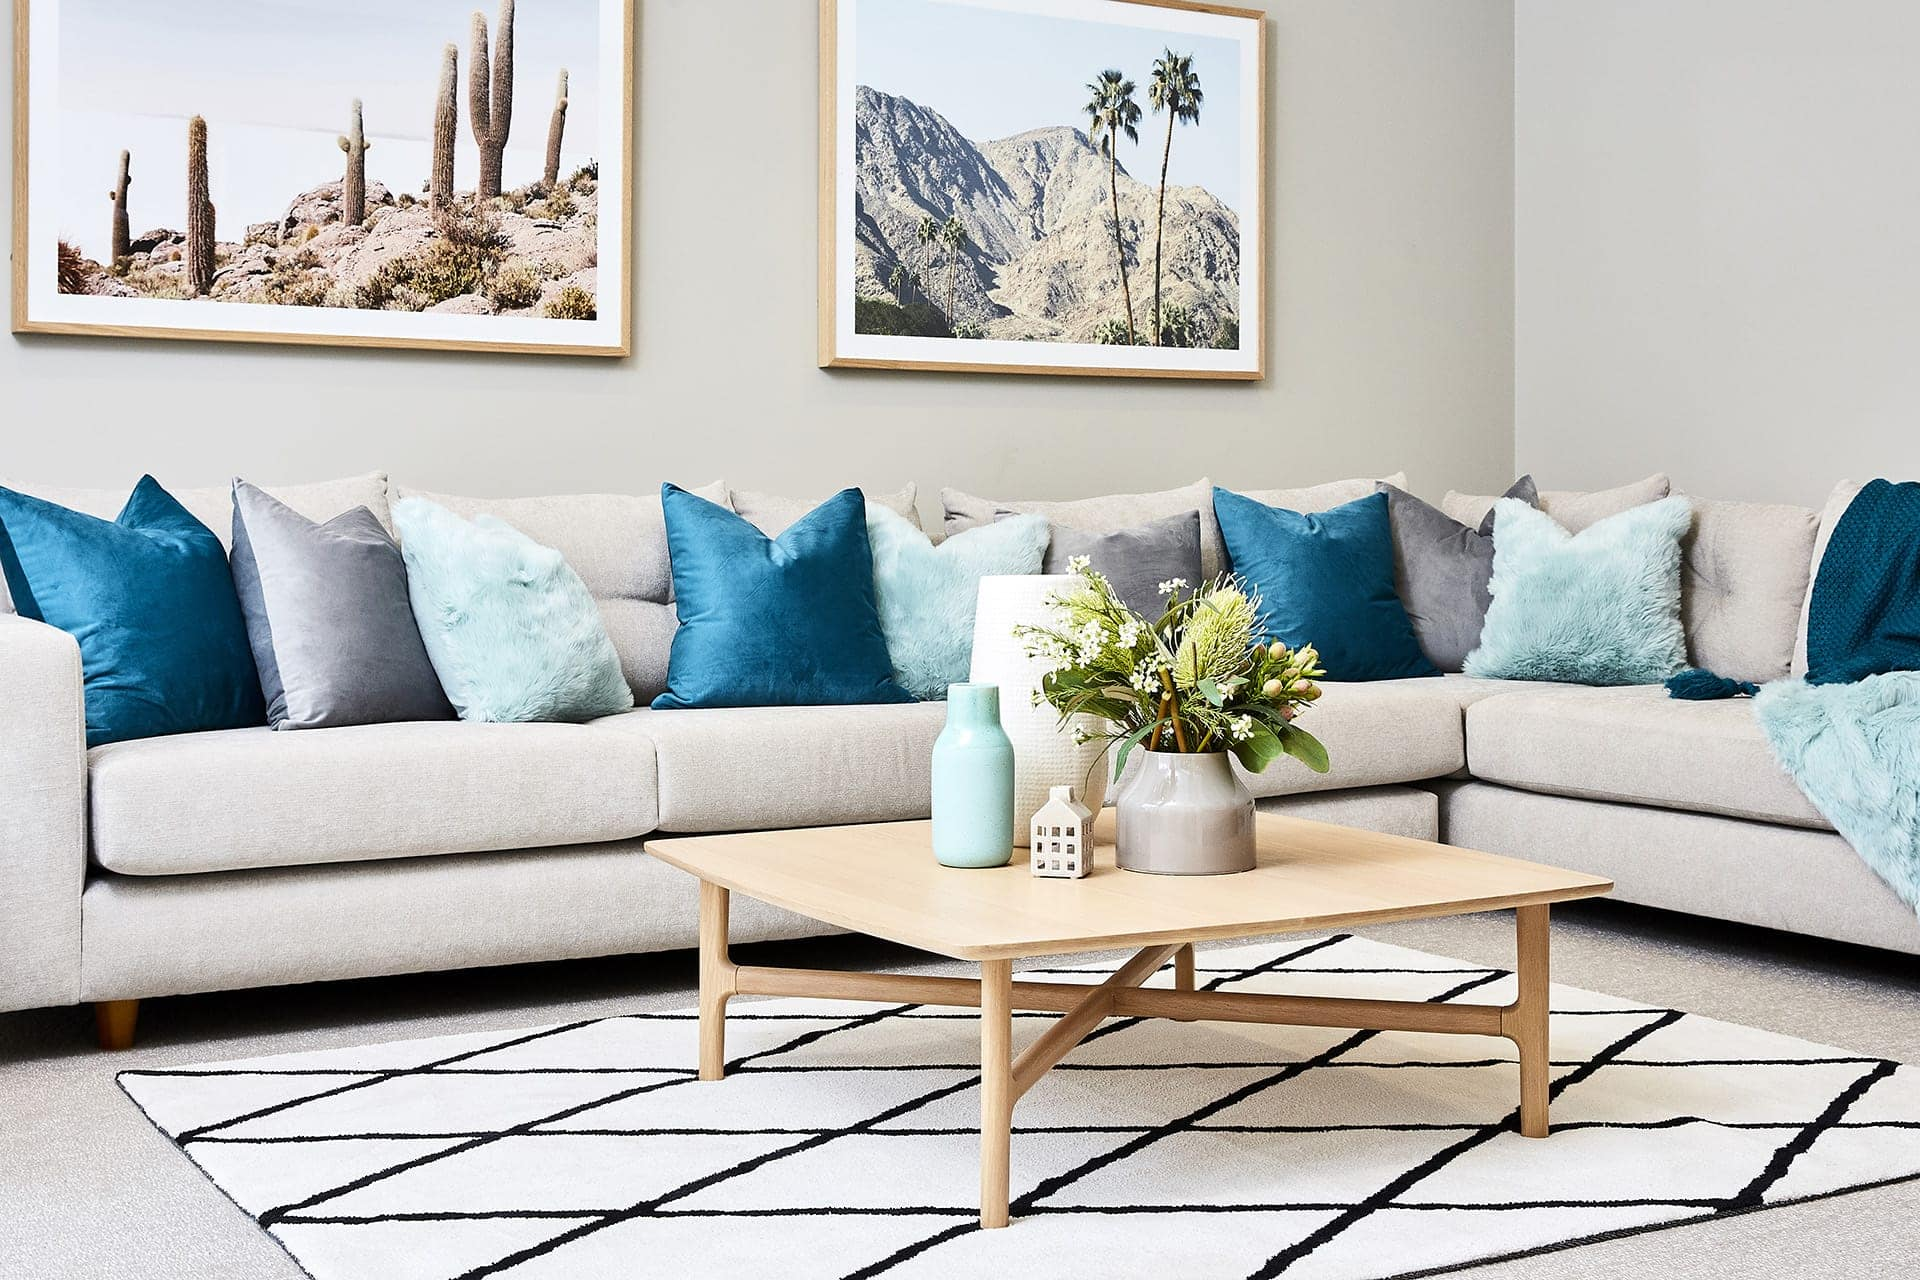 lorraine lea teal and mint cushions on sofa for spring decorating ideas from tlc interiors